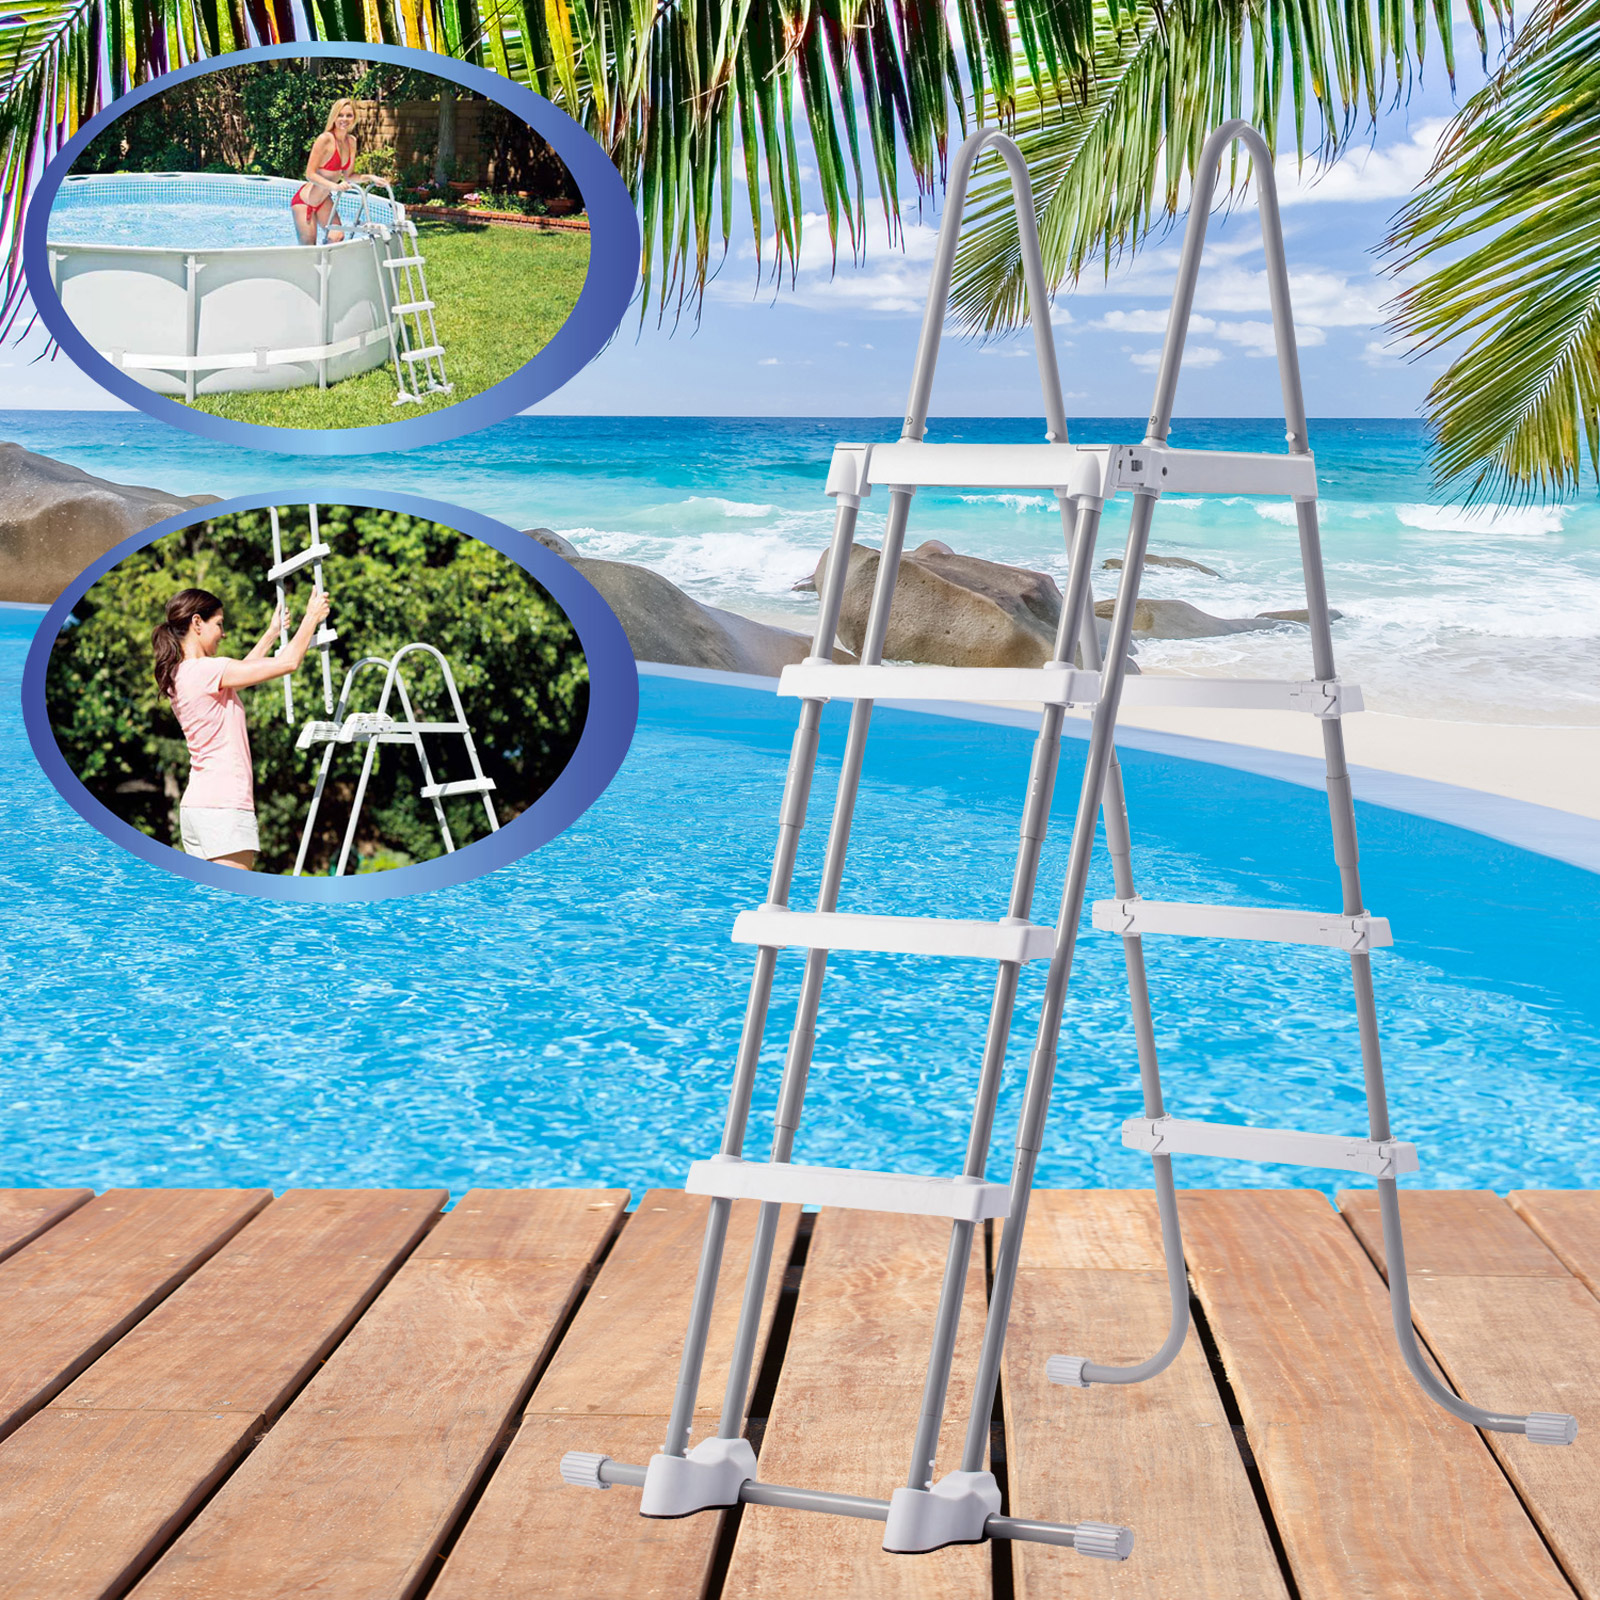 Abdeckplane Pool Steinbach Intex Swimming Pool Frame 457x122 Cm Mit Sandfilter